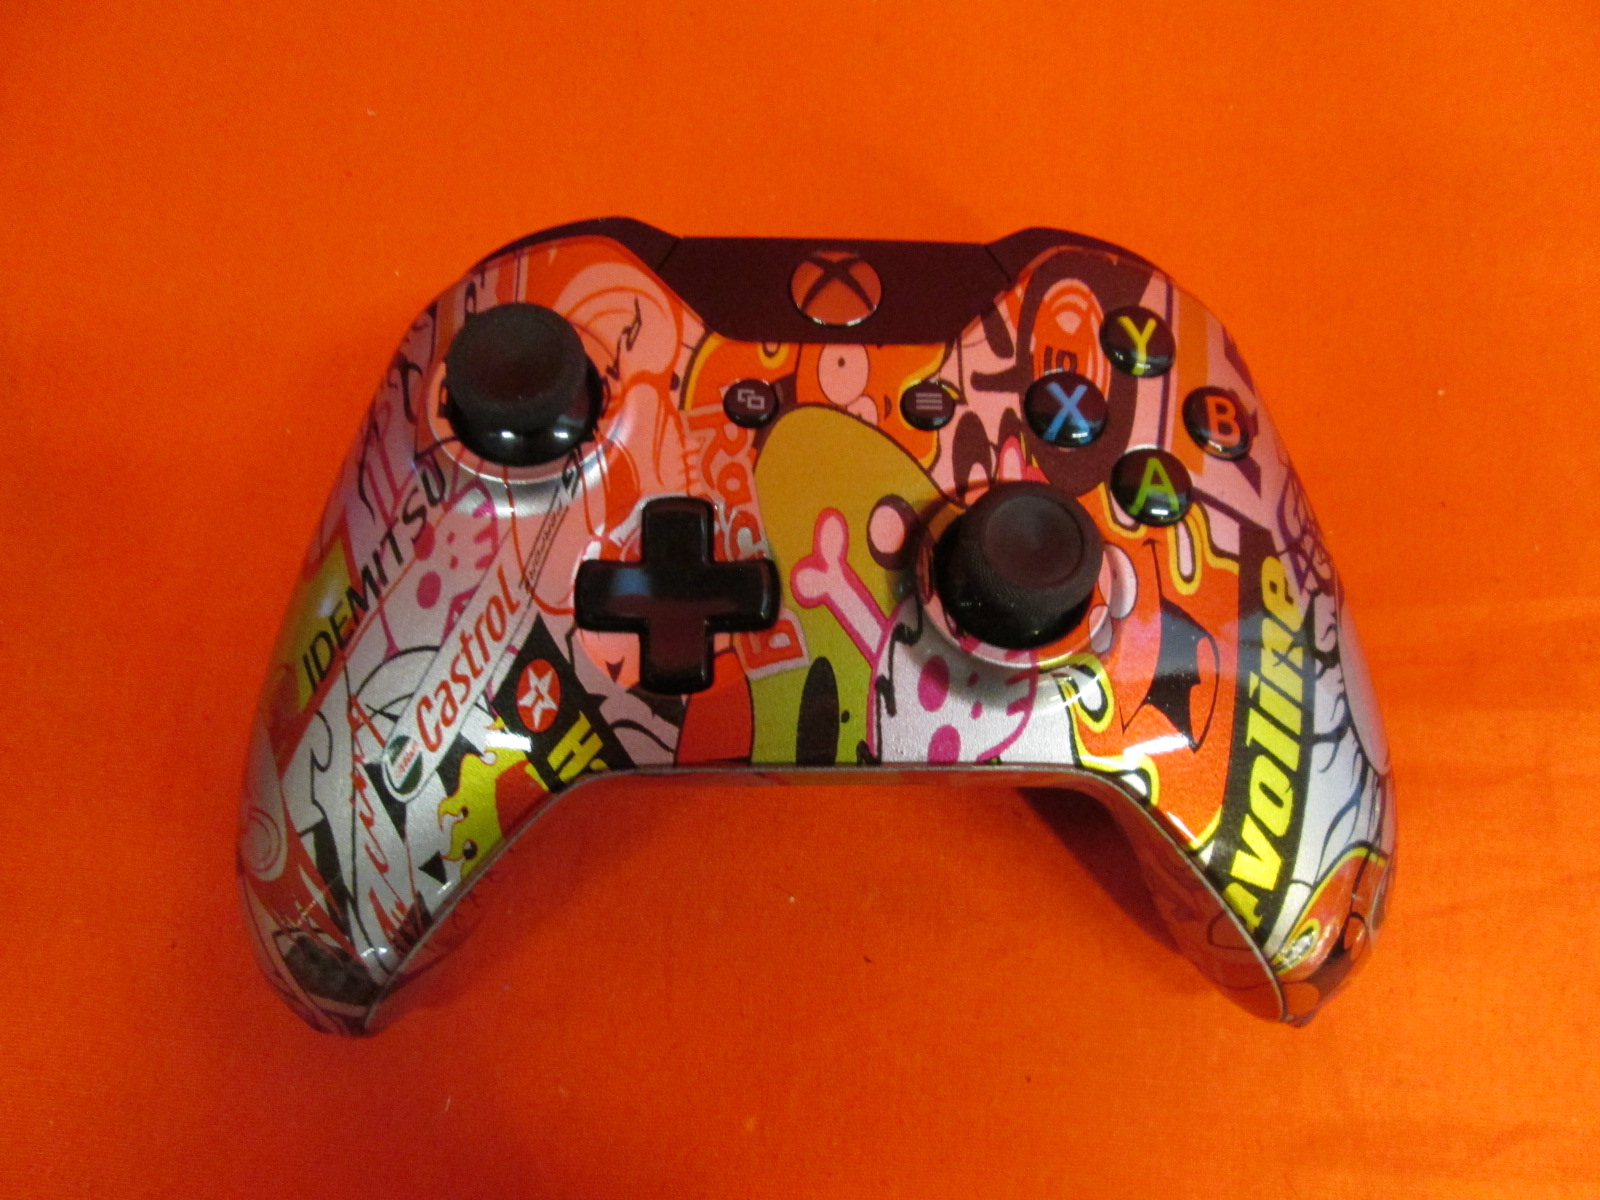 Evil Controller Steel Sticker Bomb Master Mod Wireless Controller For